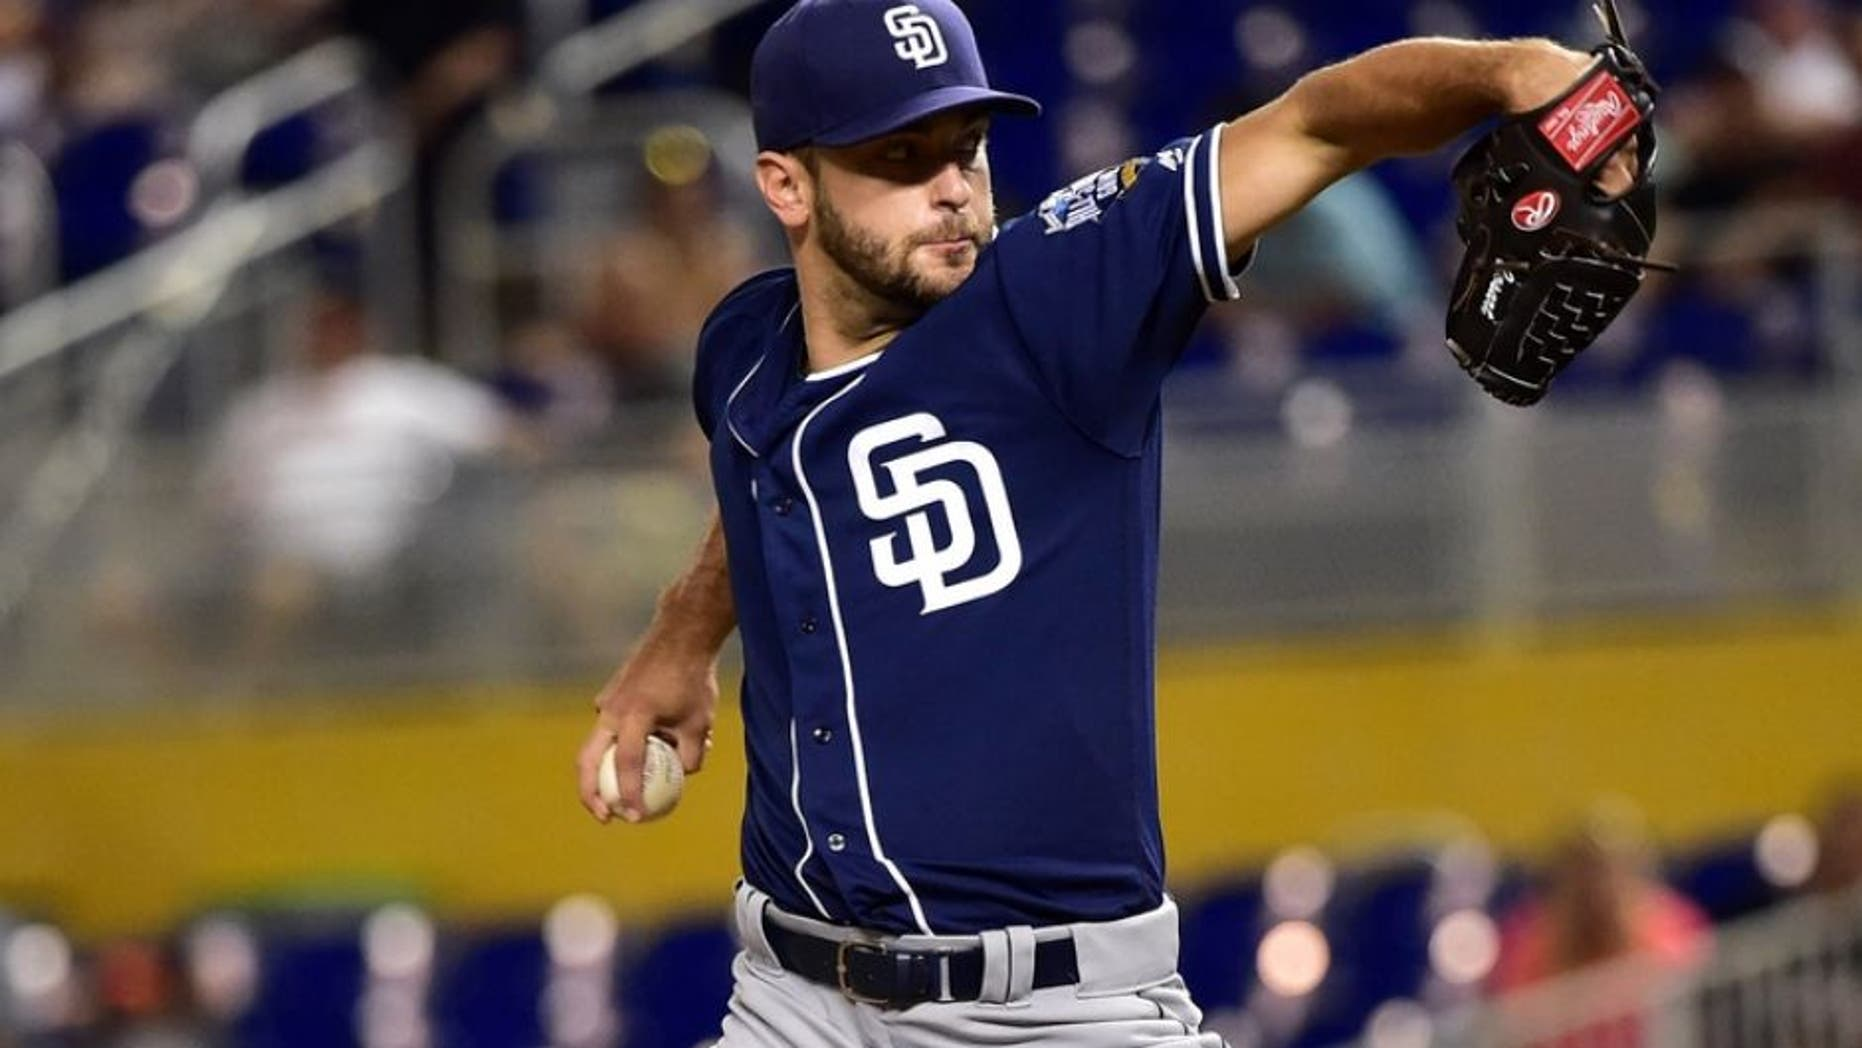 Aug 26, 2016; Miami, FL, USA; San Diego Padres starting pitcher Jarred Cosart (55) throws during the first inning against the Miami Marlins at Marlins Park. Mandatory Credit: Steve Mitchell-USA TODAY Sports